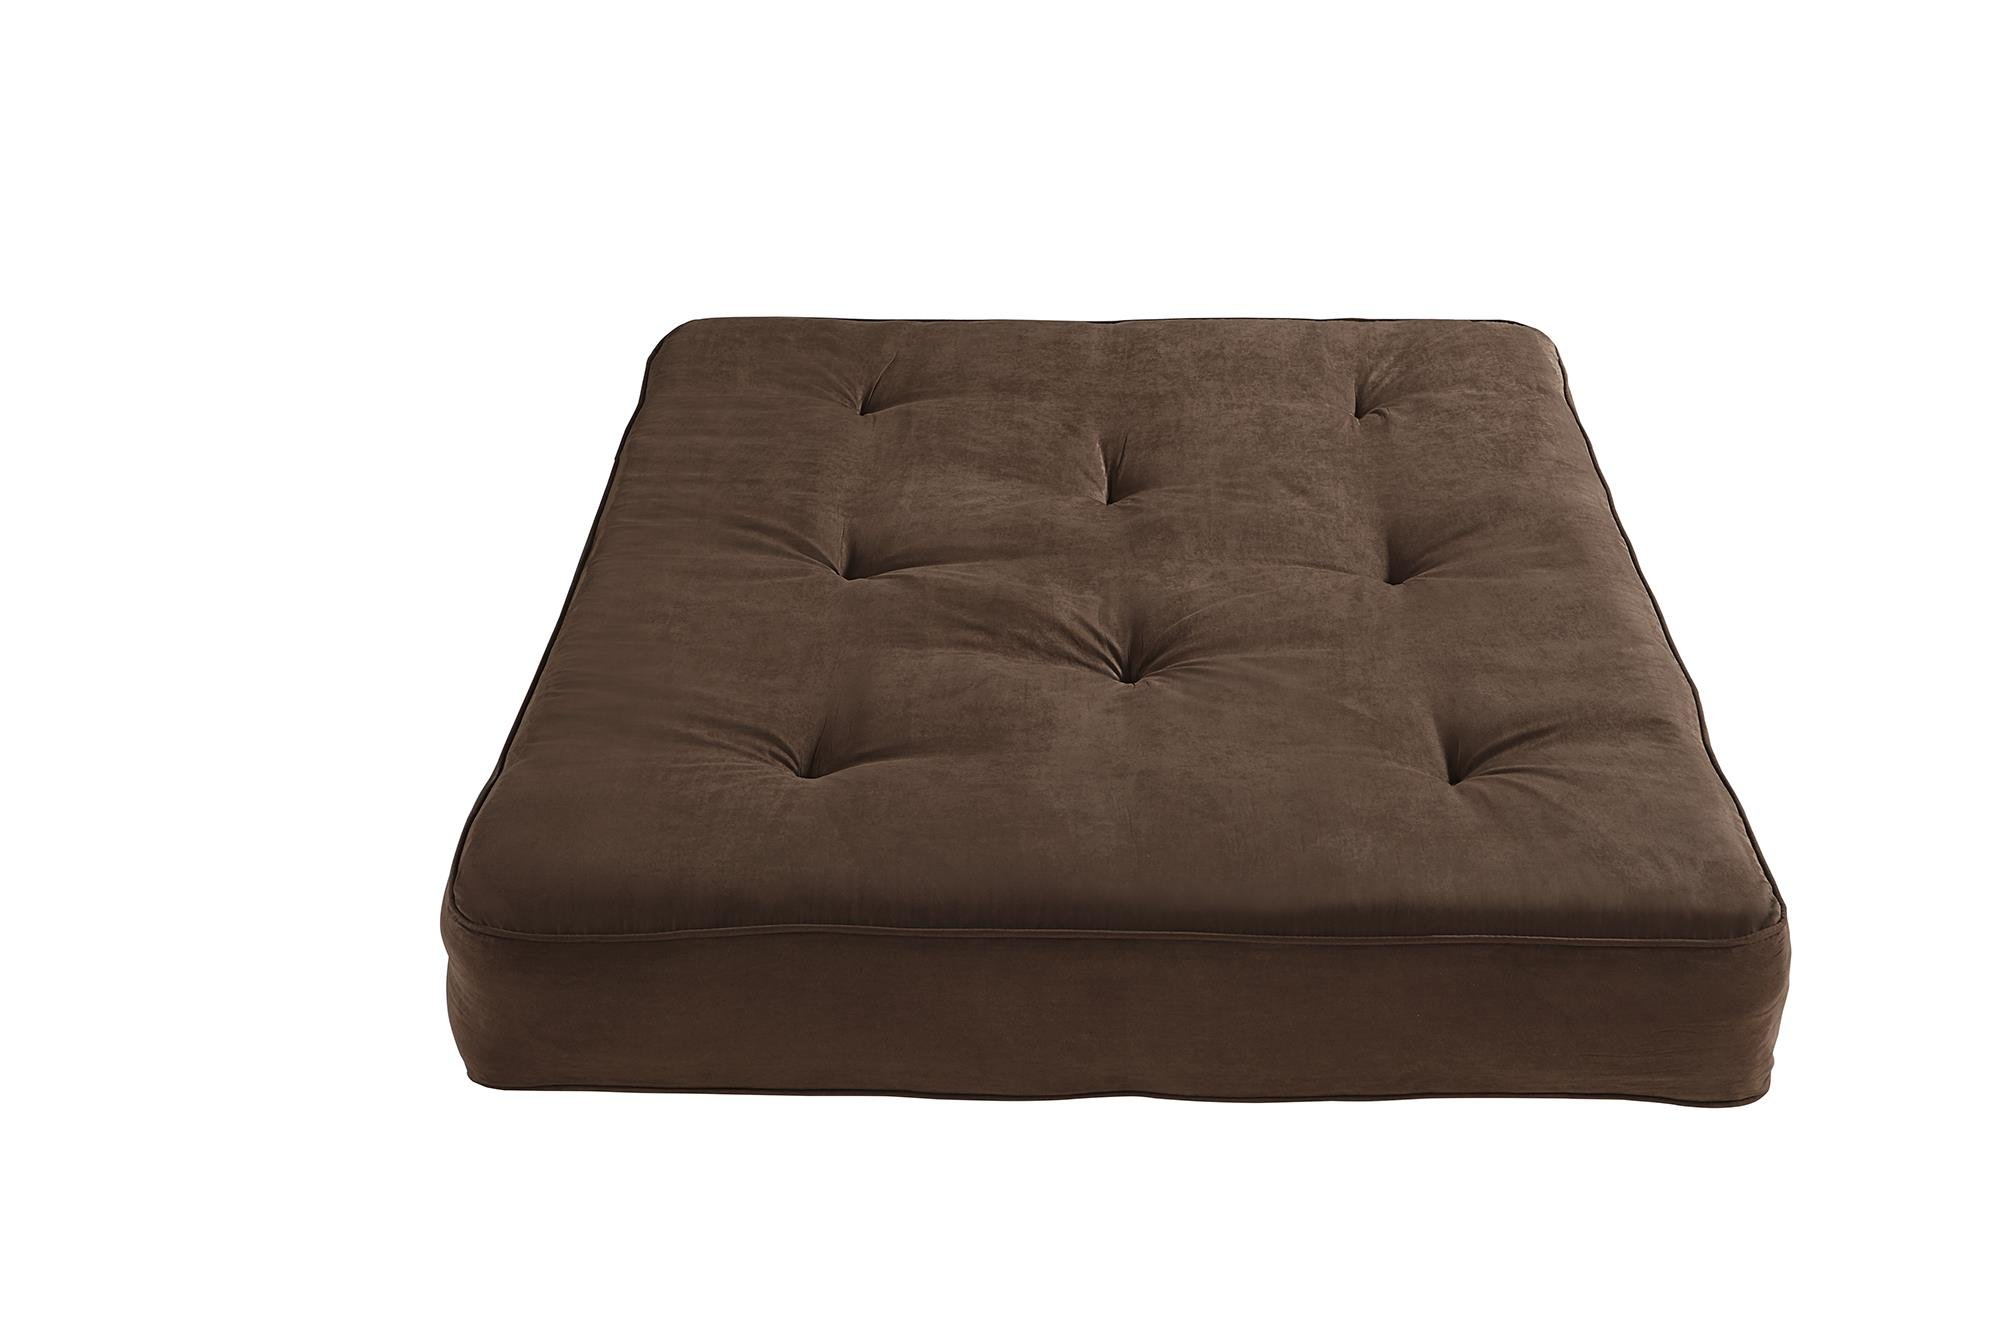 Buy Dhp 8 Inch Independently Encased Coil Premium Futon Mattress